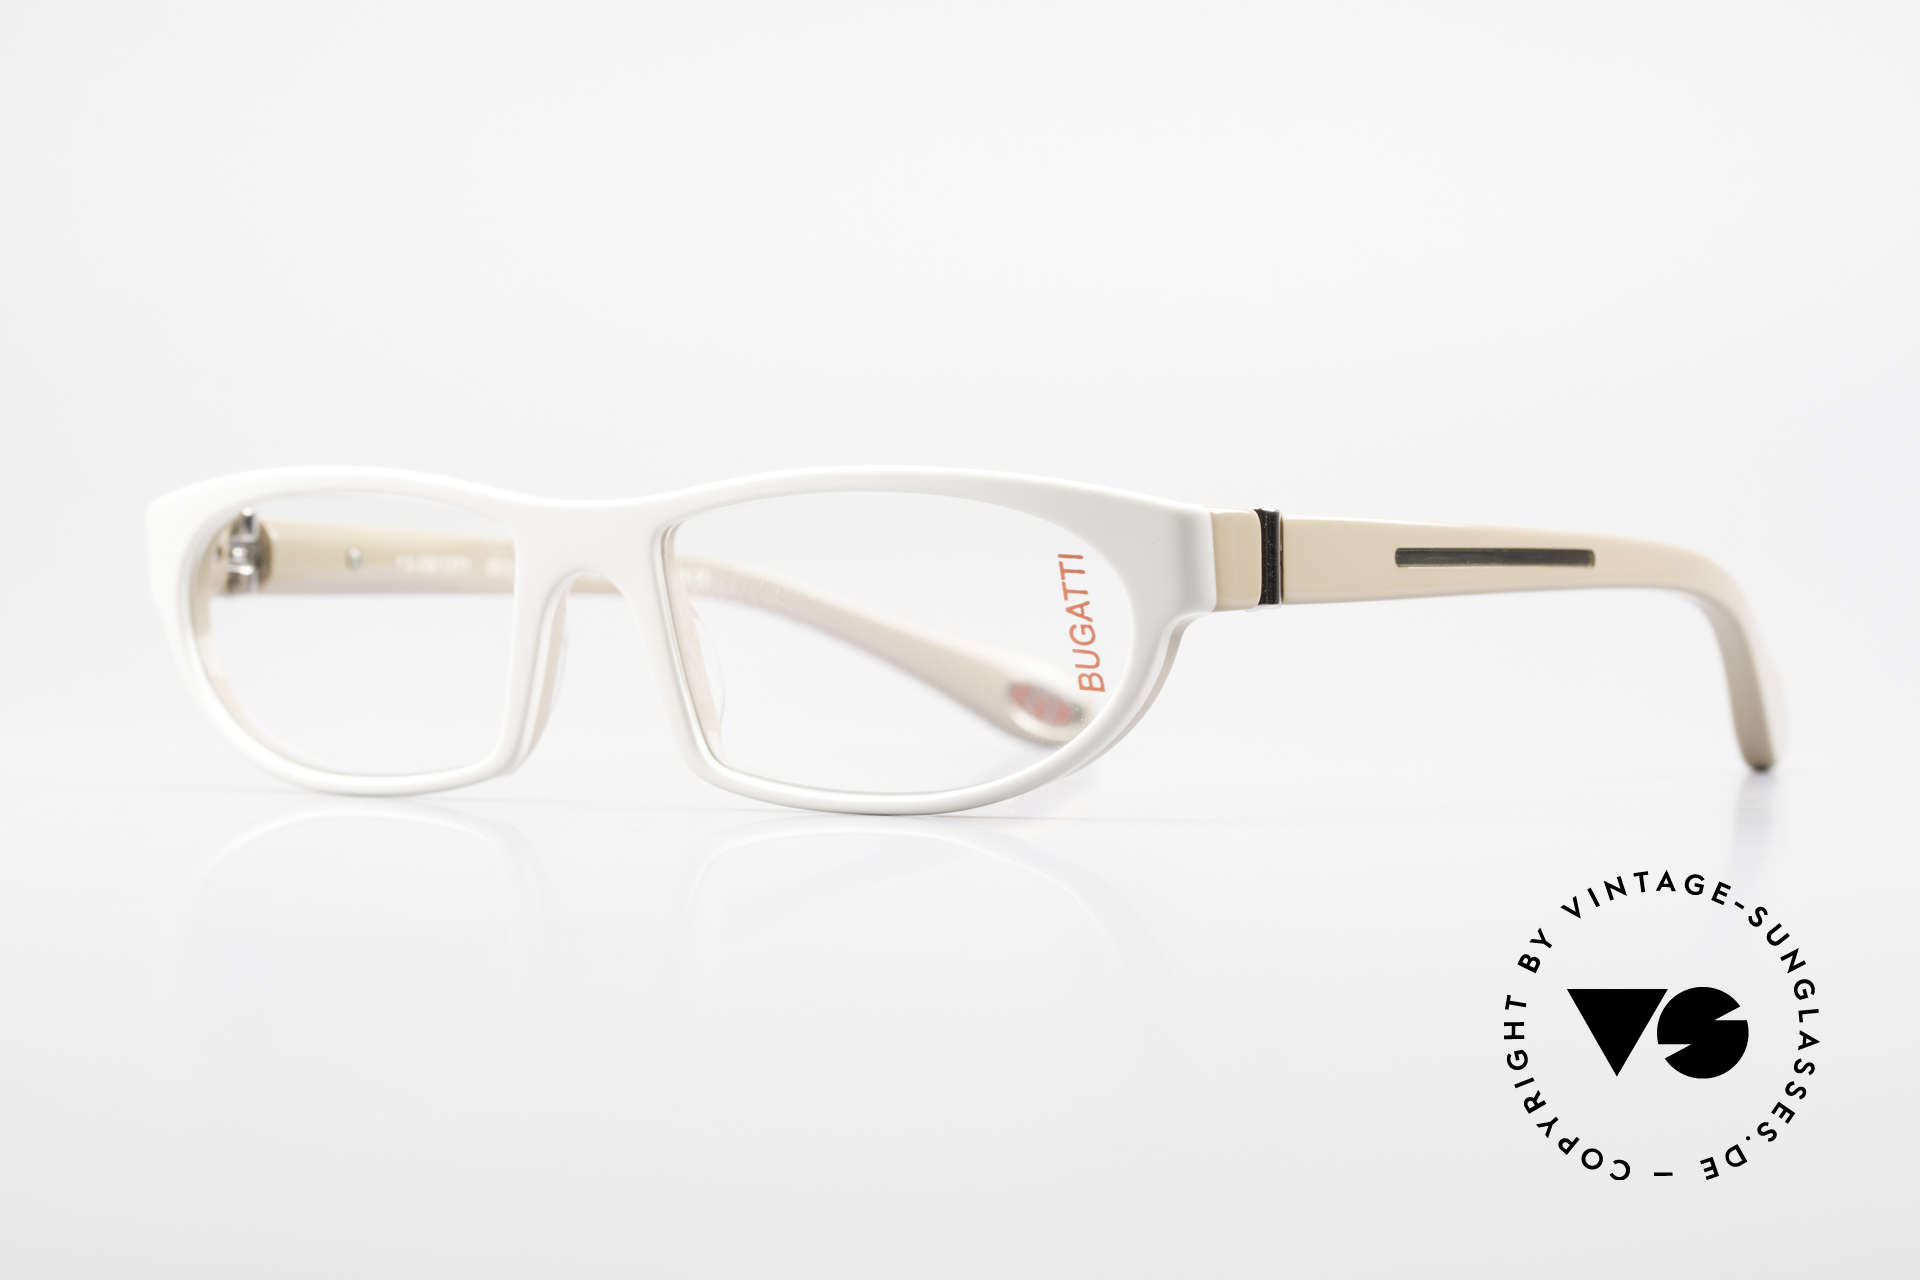 Bugatti 489 Sporty Designer Glasses Men, 1. class wearing comfort due to spring hinges, Made for Men